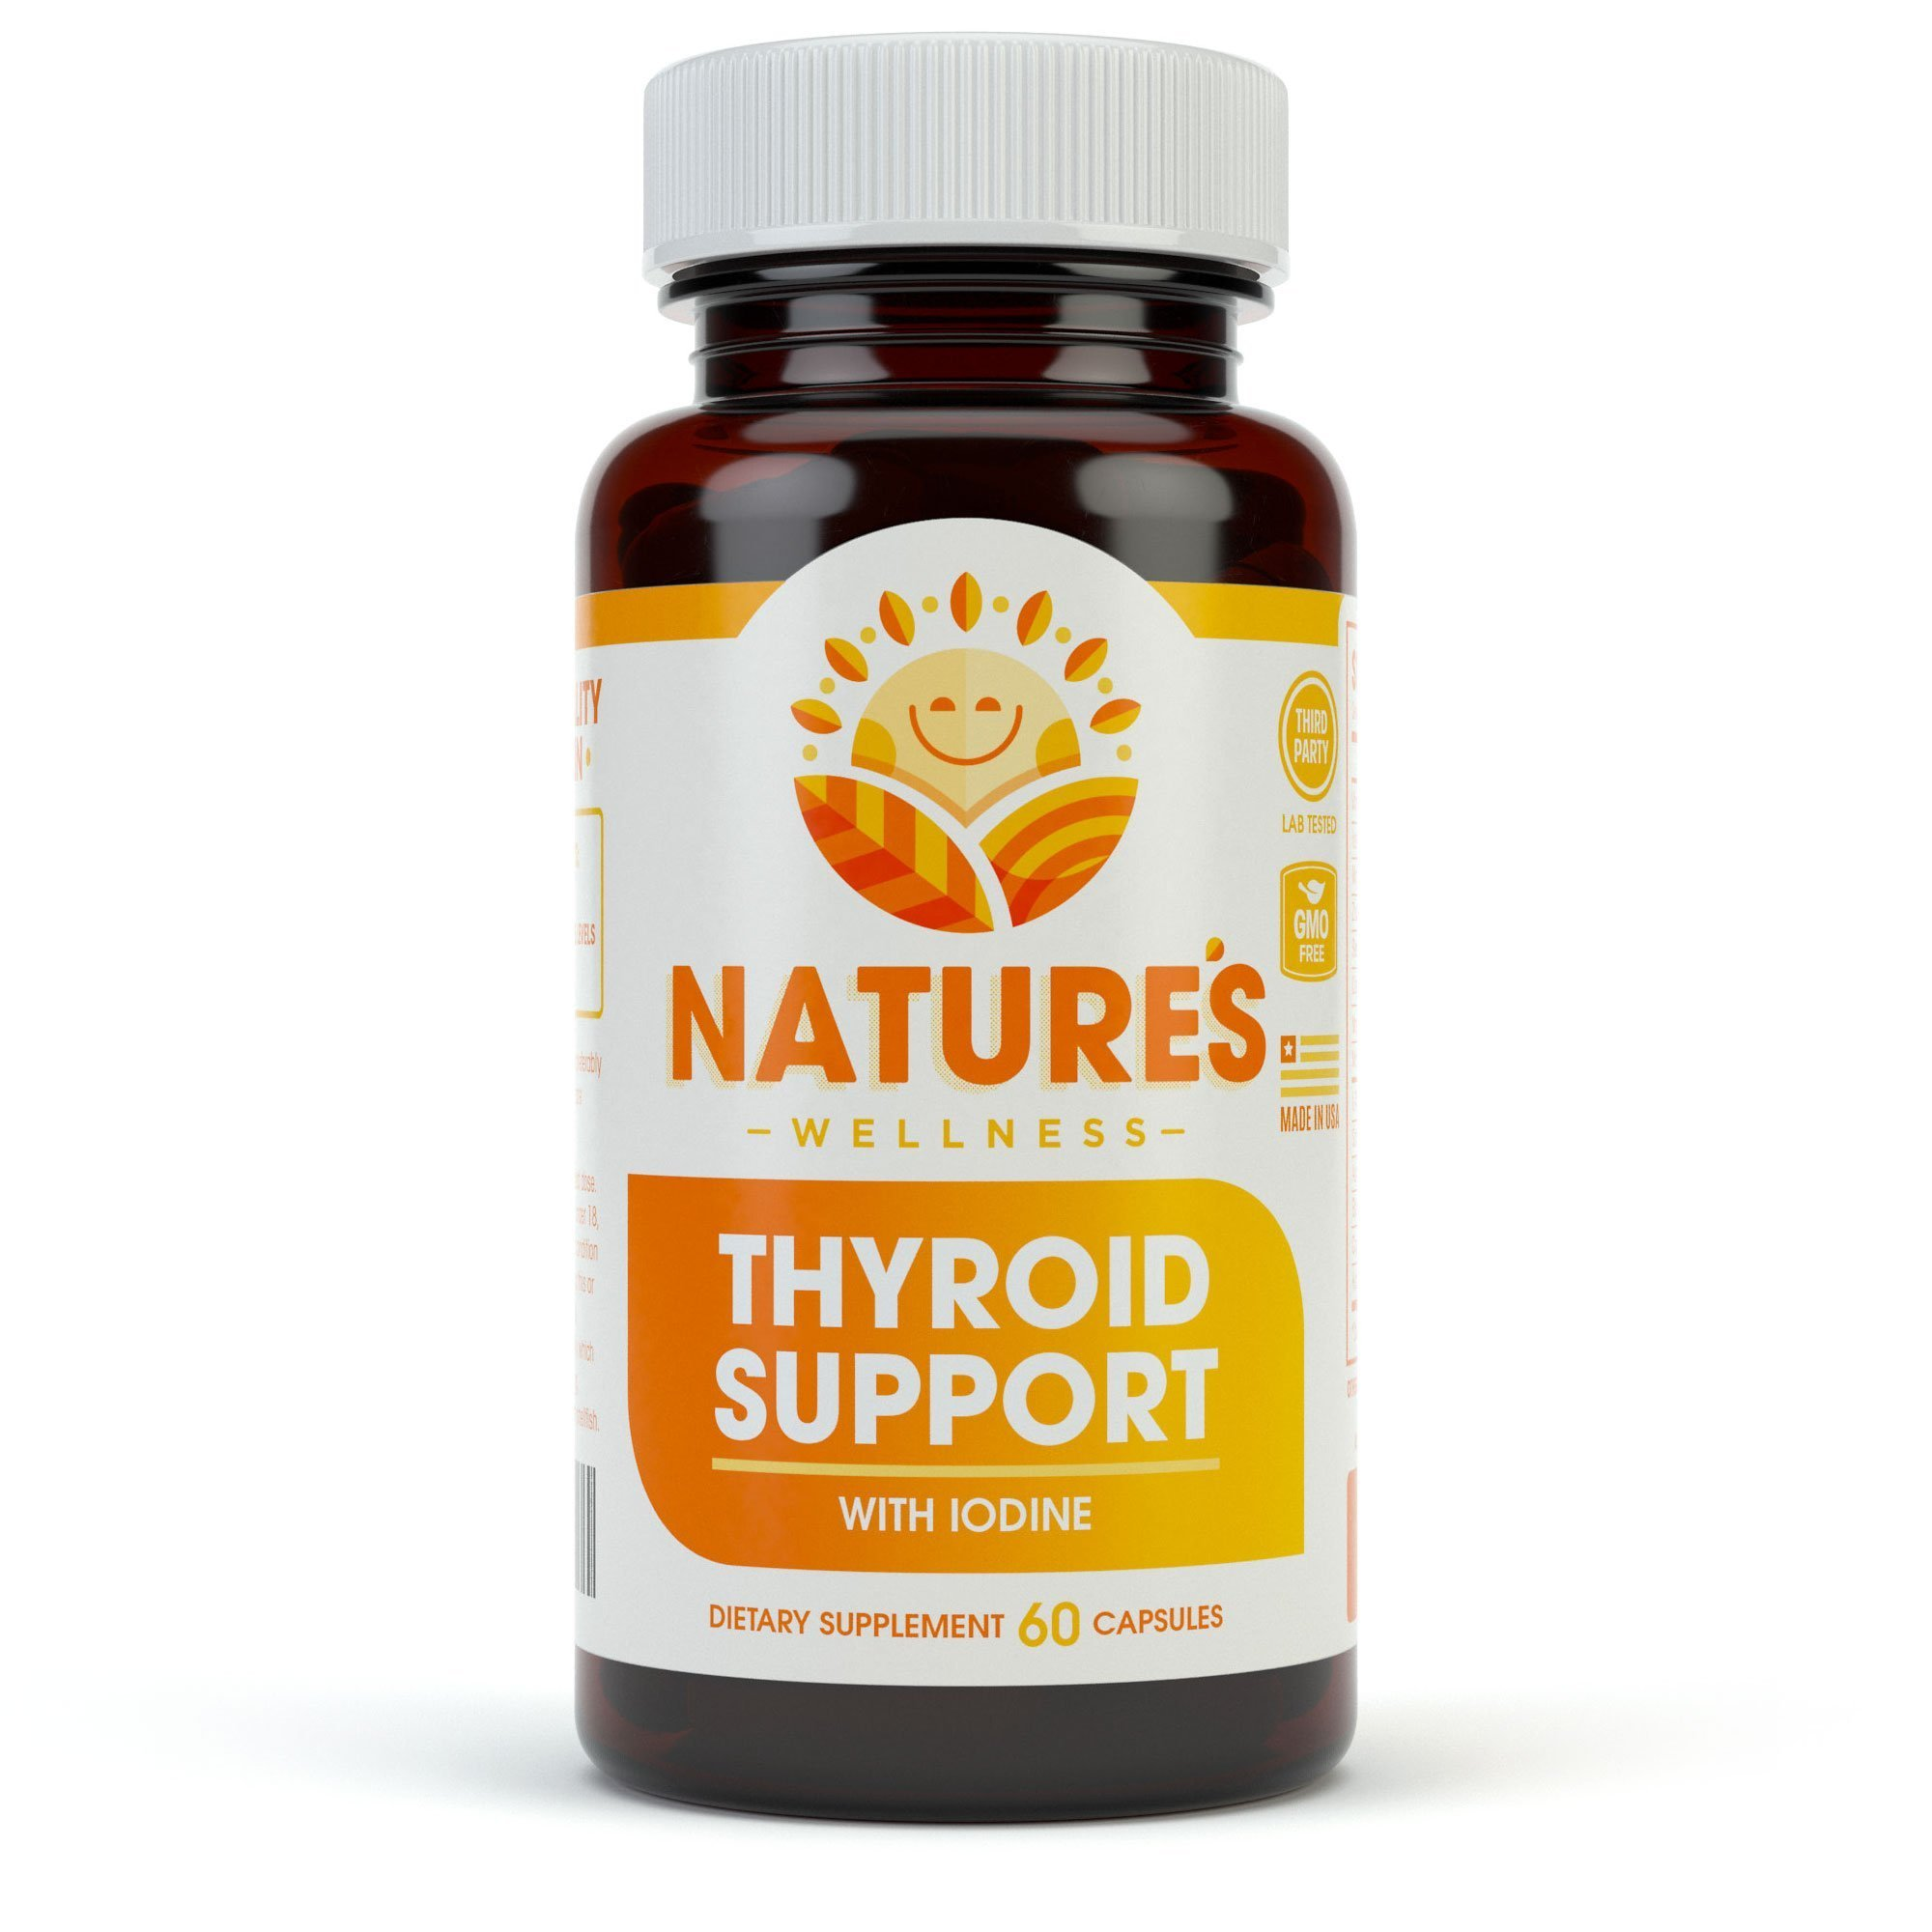 Thyroid Support Complex With Iodine For Energy Levels, Weight Loss, Metabolism, Fatigue & Brain Function - Natural Health Supplement Formula: L-Tyrosine, Selenium, Kelp, Bladderwrack, Ashwagandha, etc by Natures Wellness